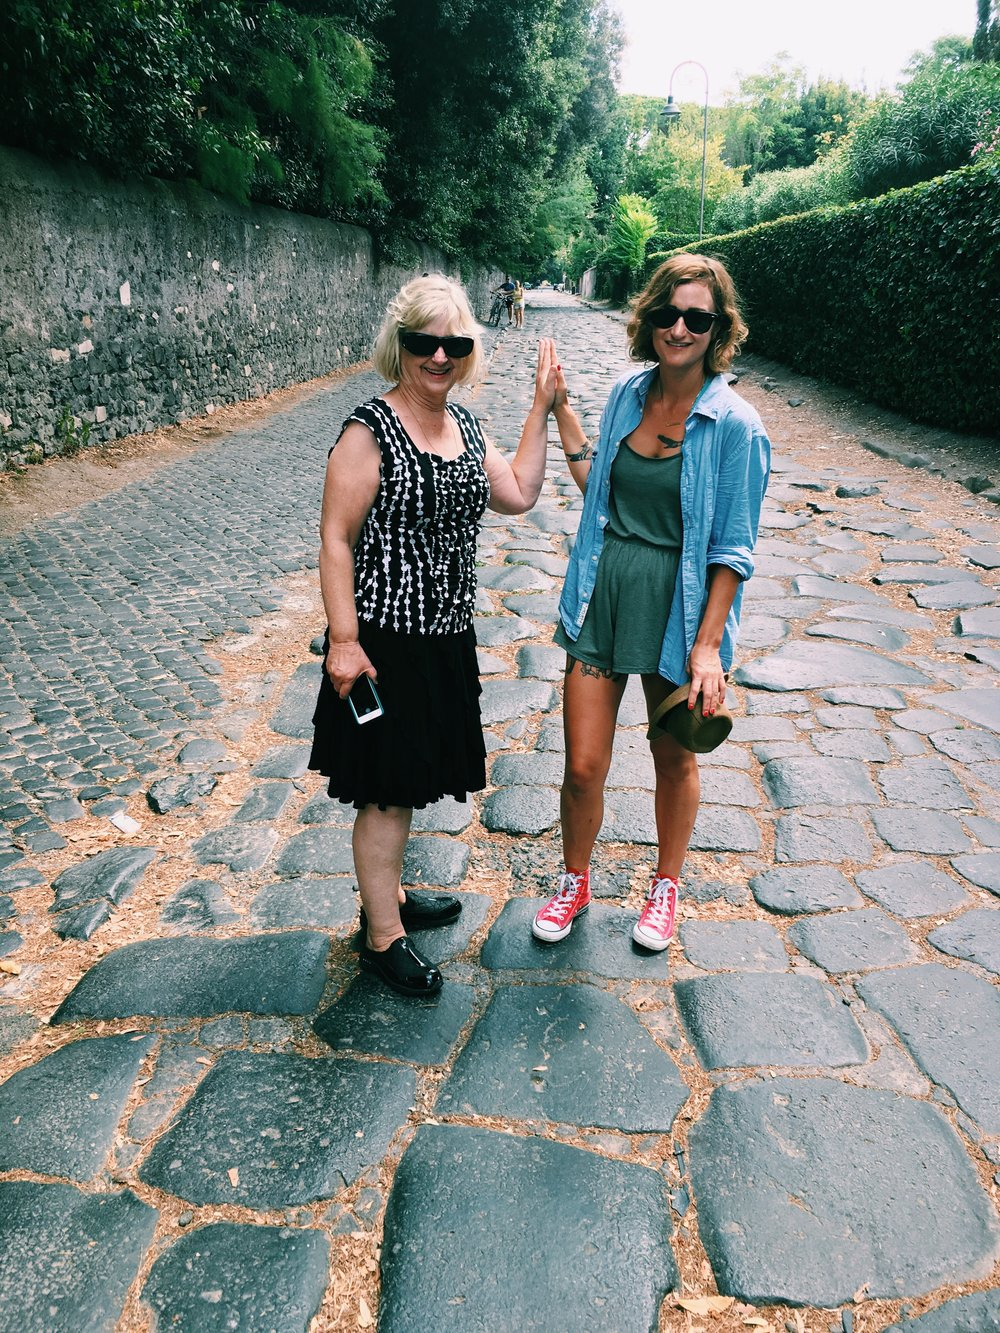 Rome, August 2016.  Weight 125, ZERO BRUISES ON MY BODY, shitting solid once or twice!! a day, happy as fucking fuck. With MY MOMMY who I used to not be able to be around because when you want to die it's hard to be around your mommy. In other words. TIME WORKS.